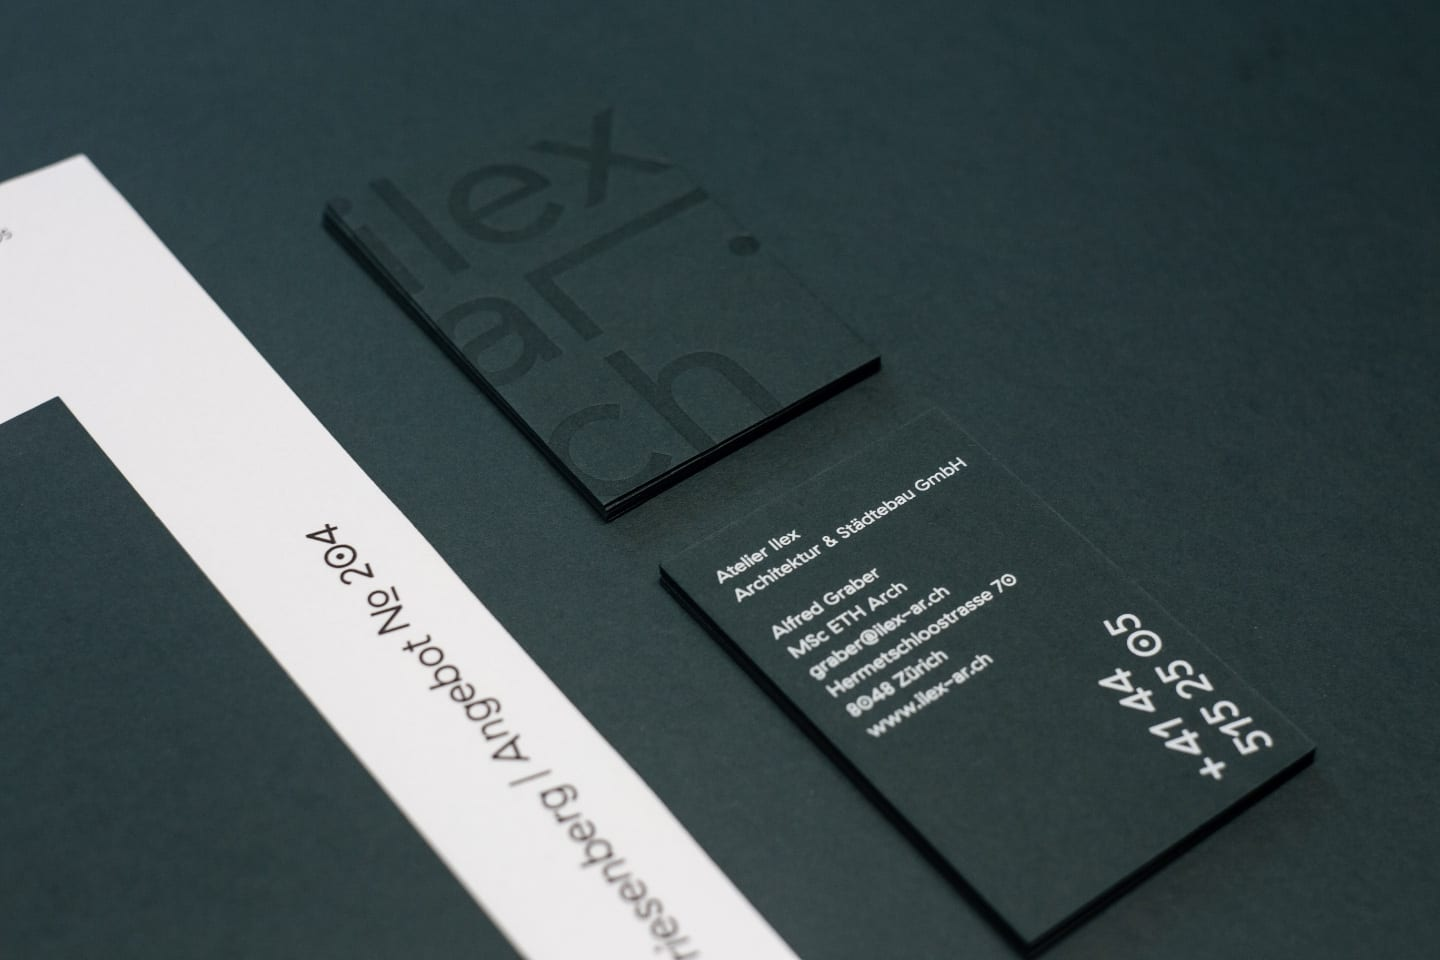 ilex-architects-folder-and-business-cards-1